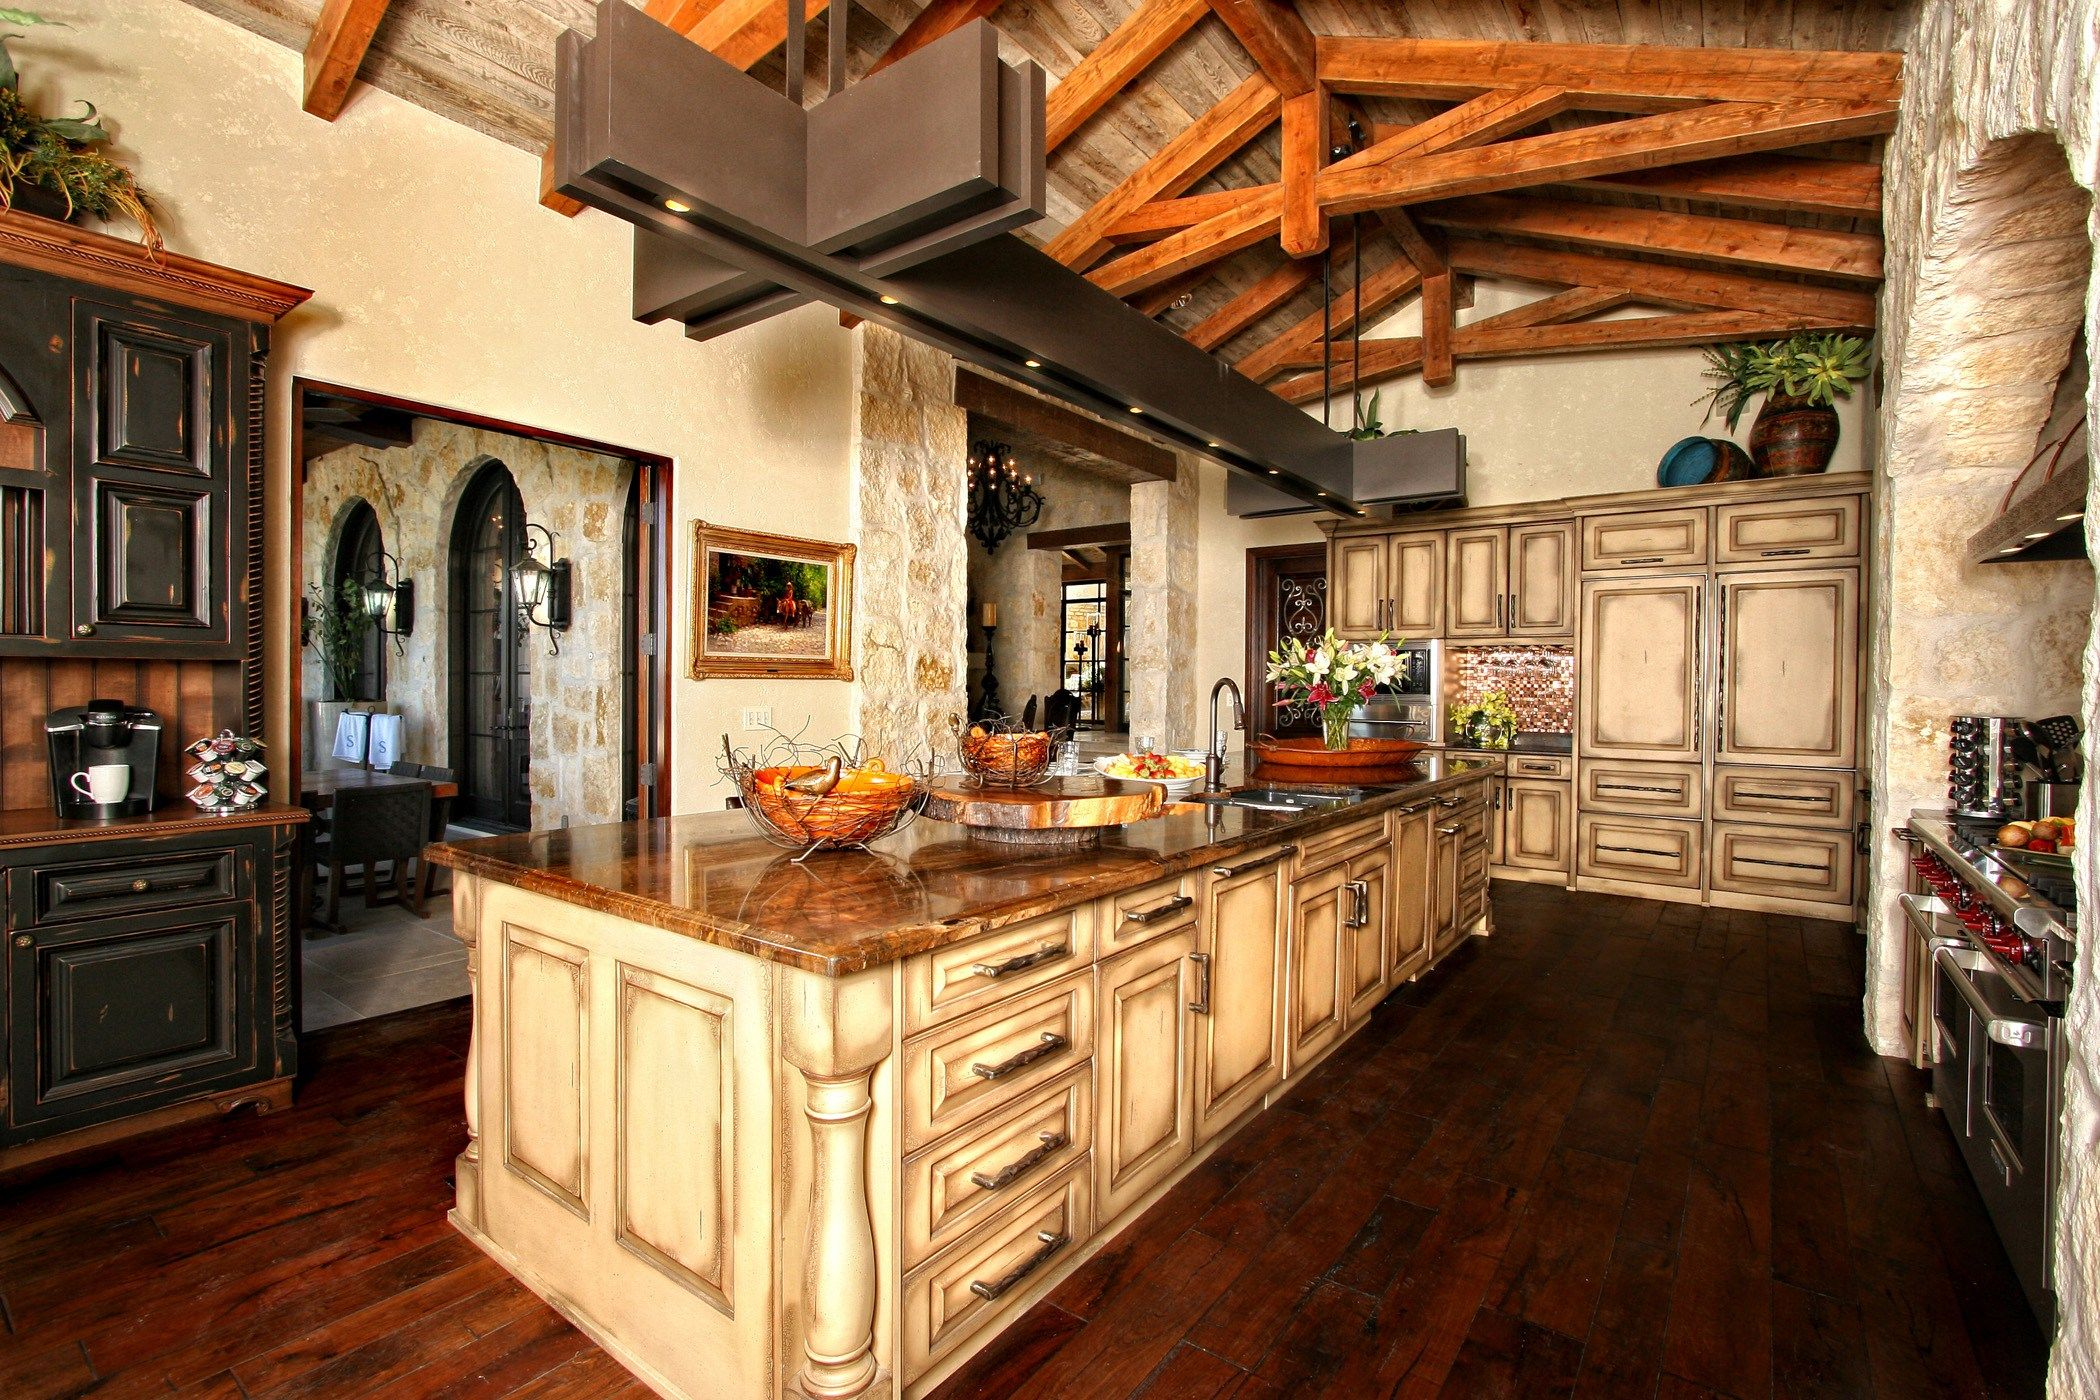 Kitchen Design Austin Awesome Rustic Spanish Inspired Kitchen Zbranek Holt Custom Homes Austin . Design Ideas